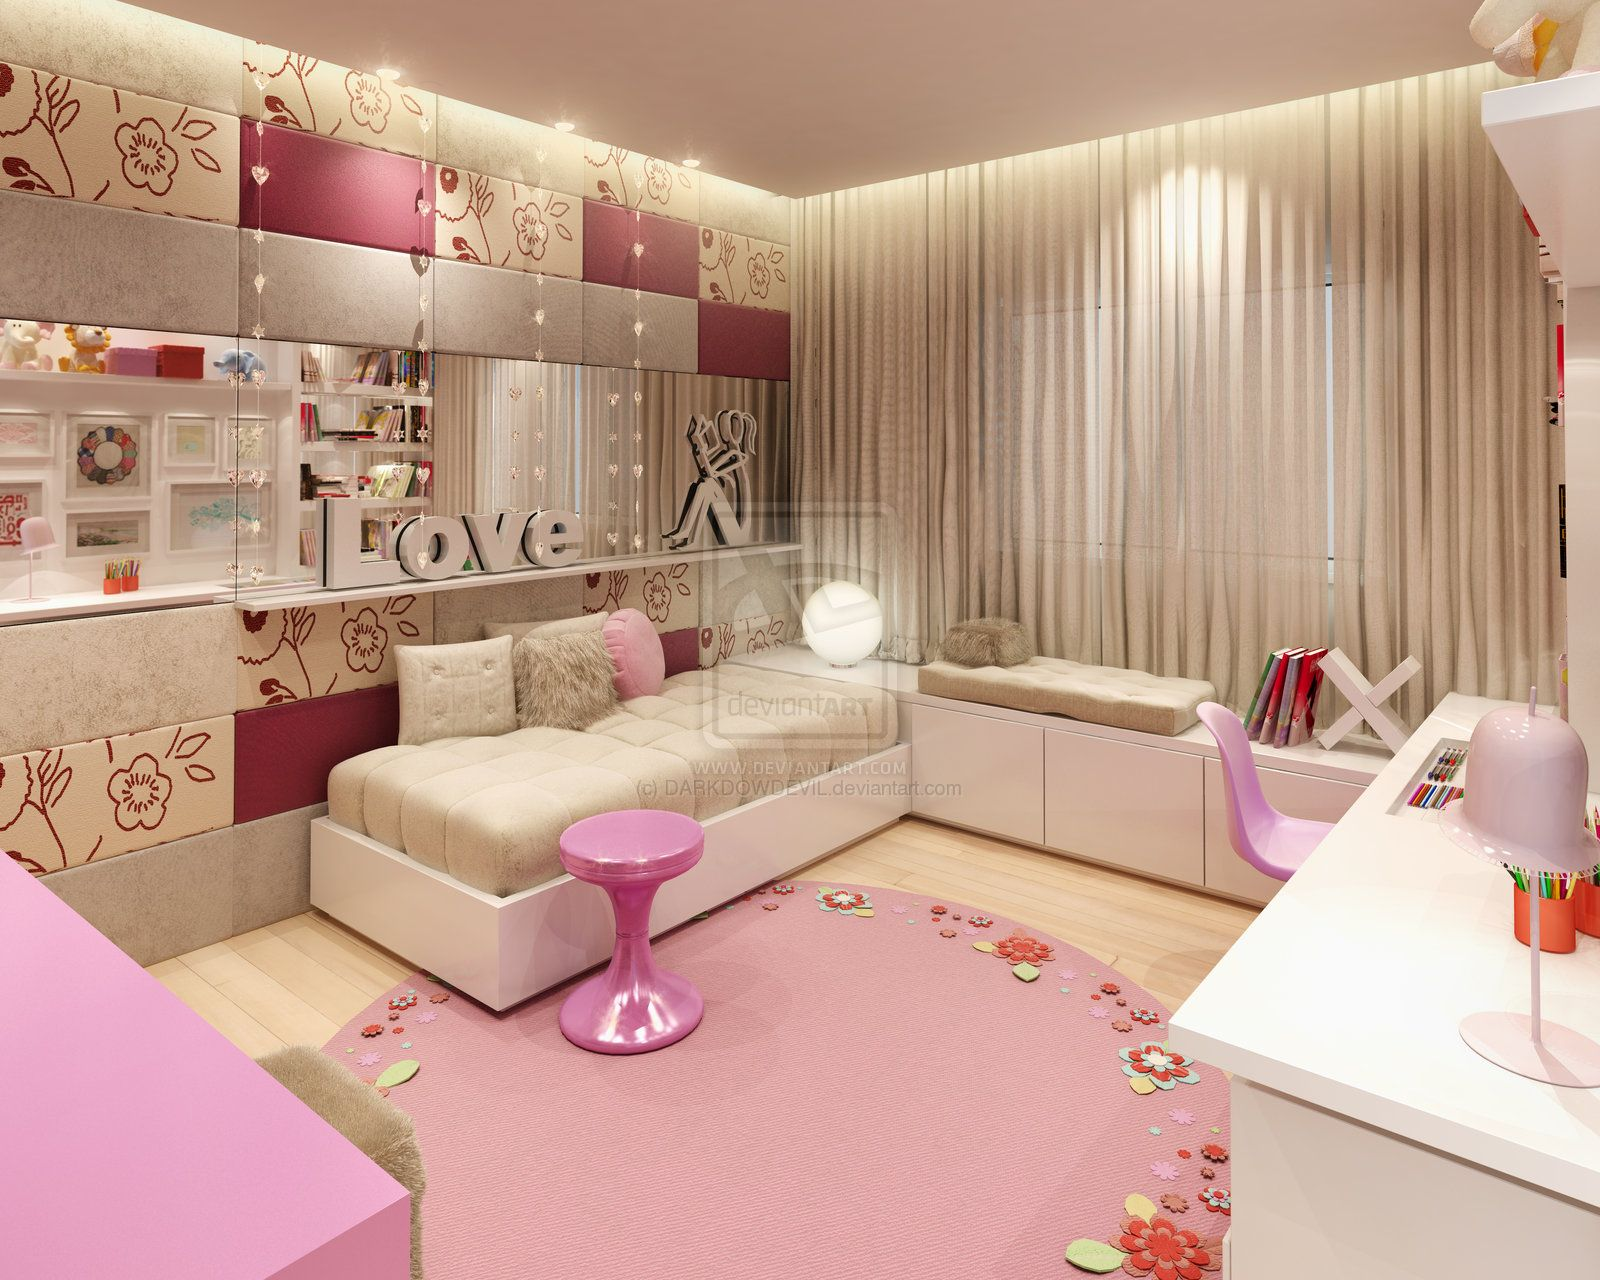 Luxury bedrooms for teenage girls - 30 Dream Interior Design Ideas For Teenage Girl S Rooms